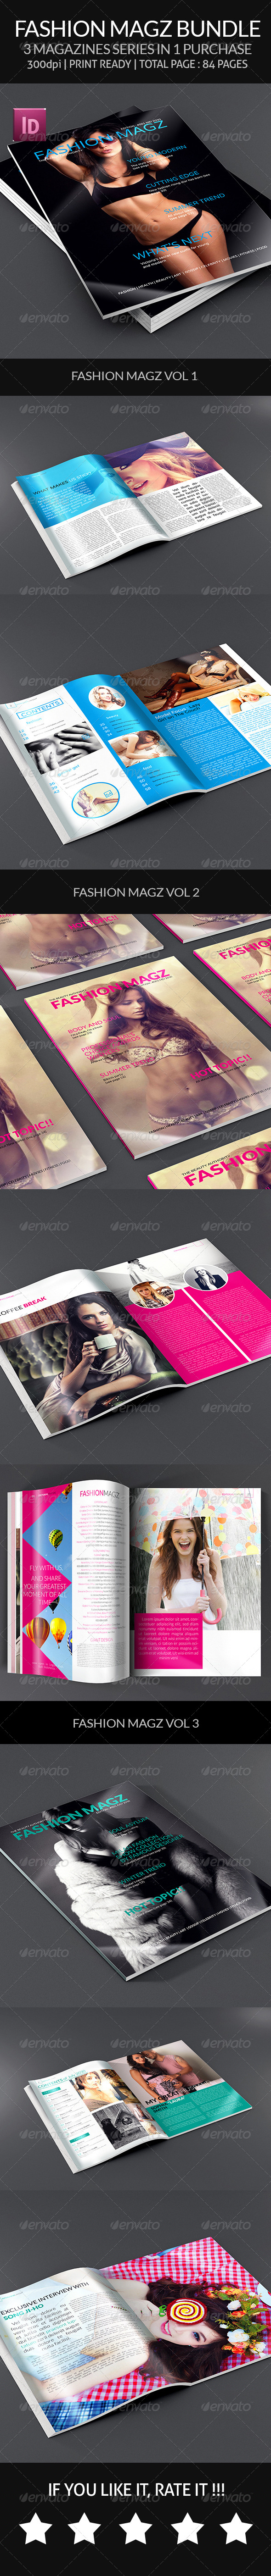 GraphicRiver Fashion Magz Bundle Indesign Magazine 8188832